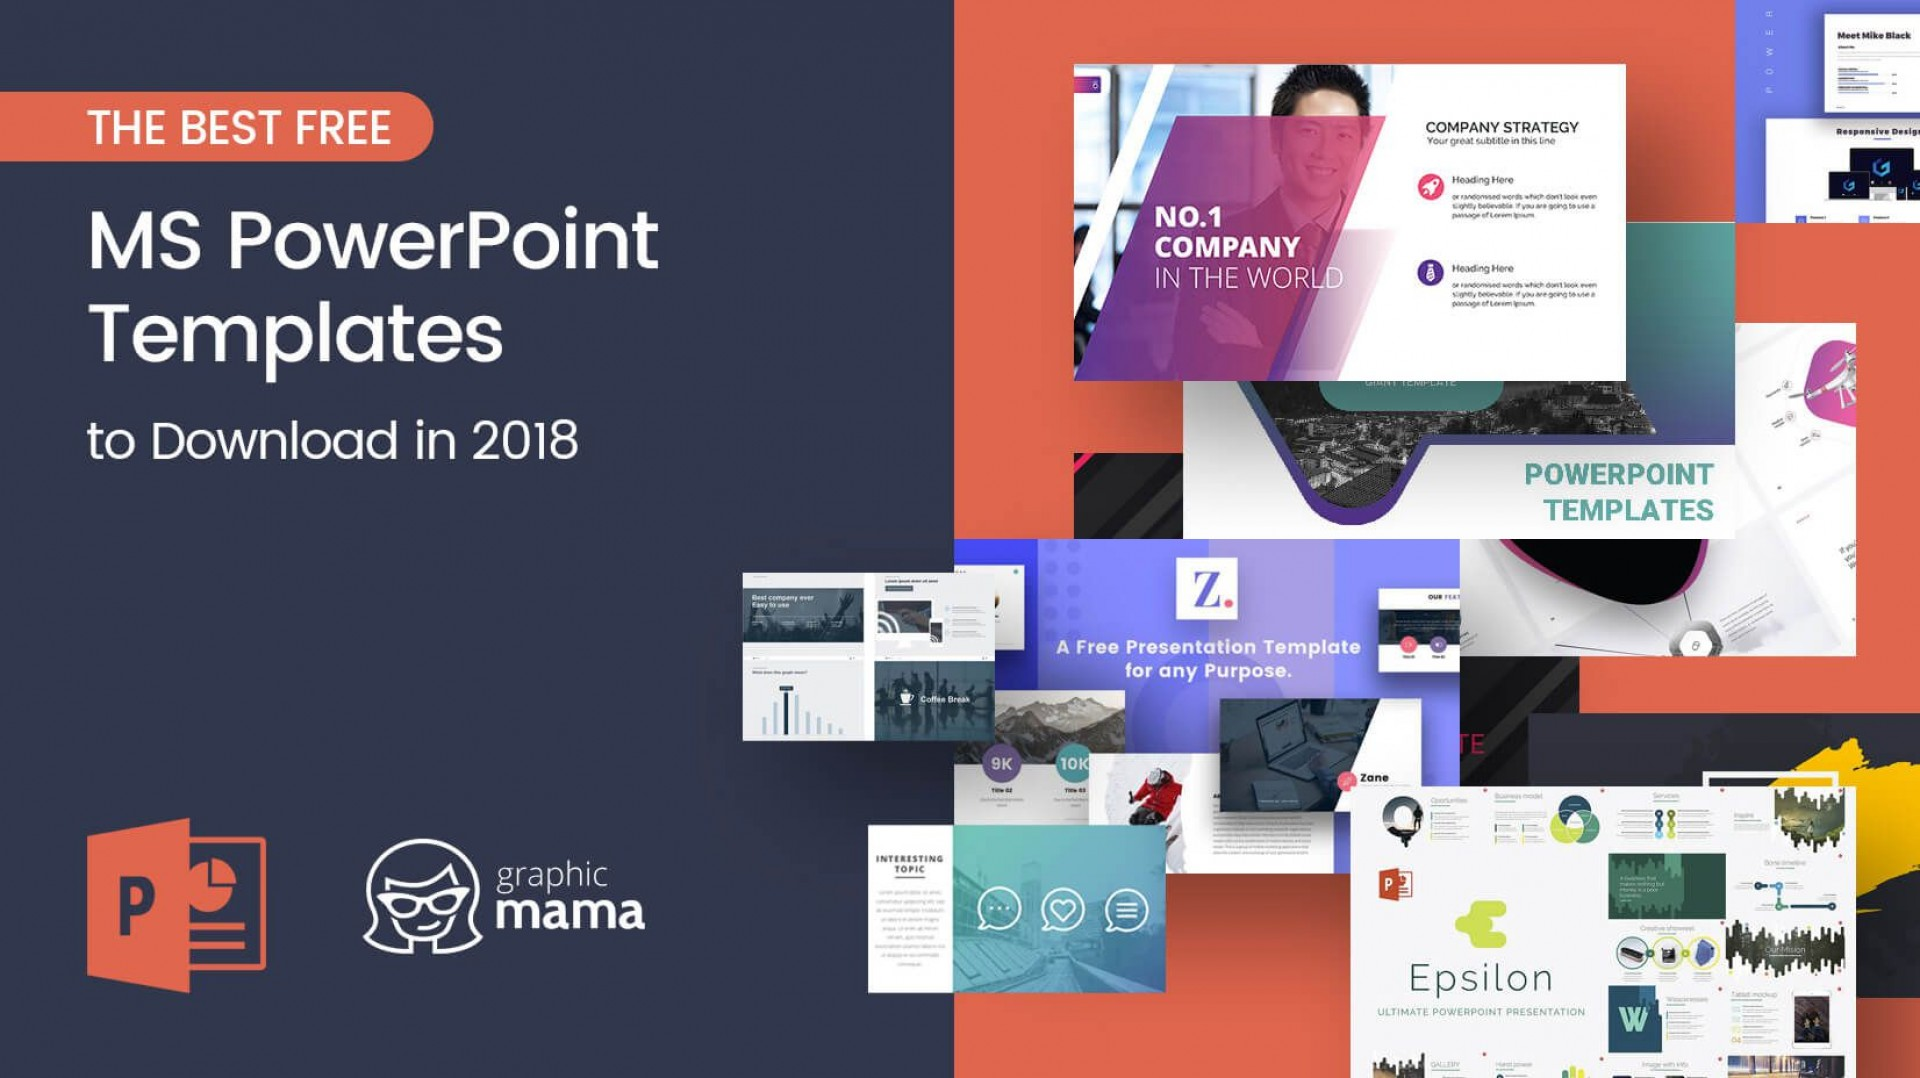 008 Unbelievable Professional Powerpoint Template Free Idea  Download 2019 Medical Mac1920